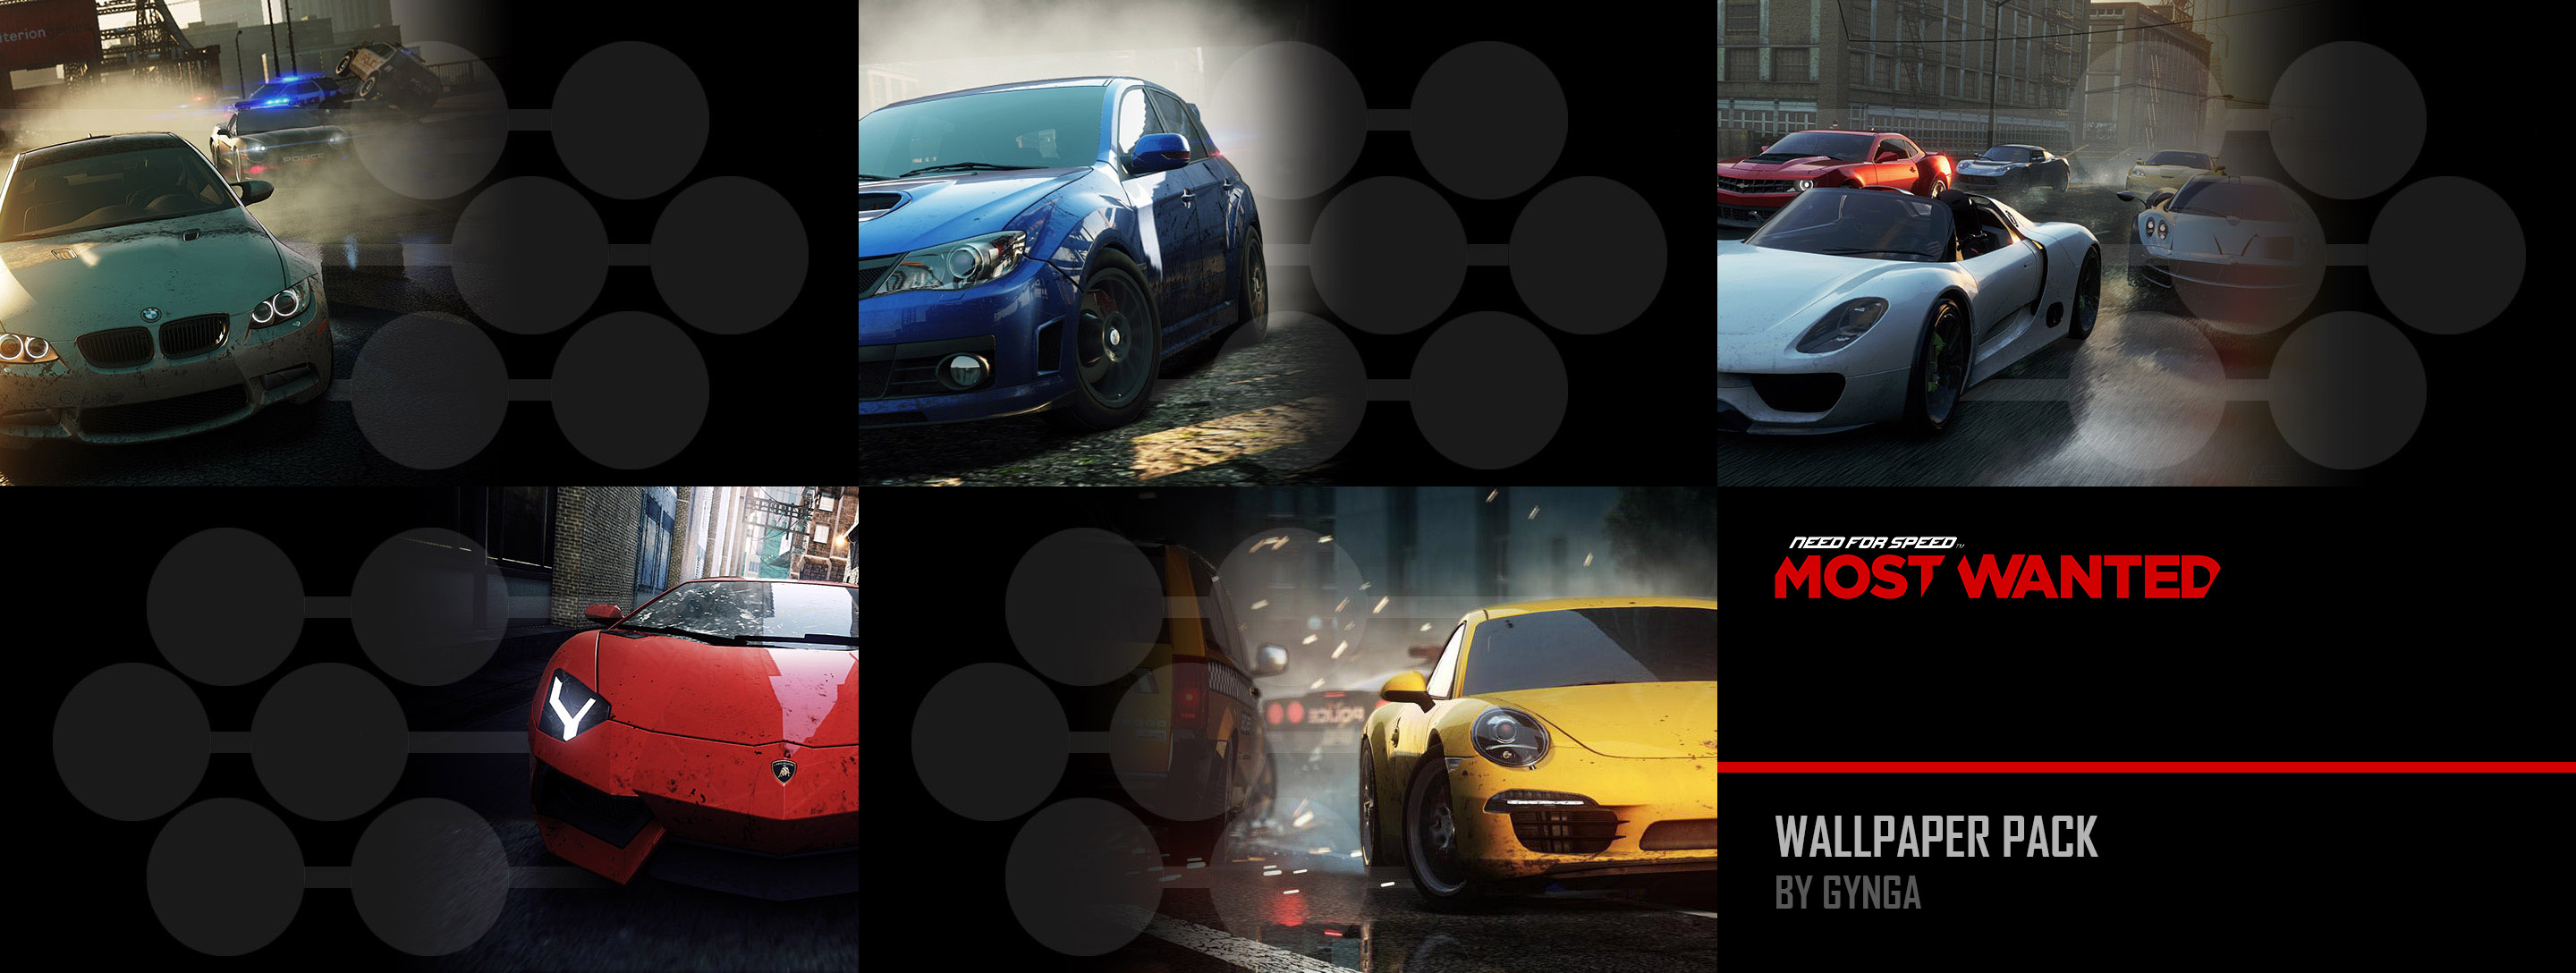 Need For Speed Most Wanted Ps Vita Wallpaper Pack By Gynga